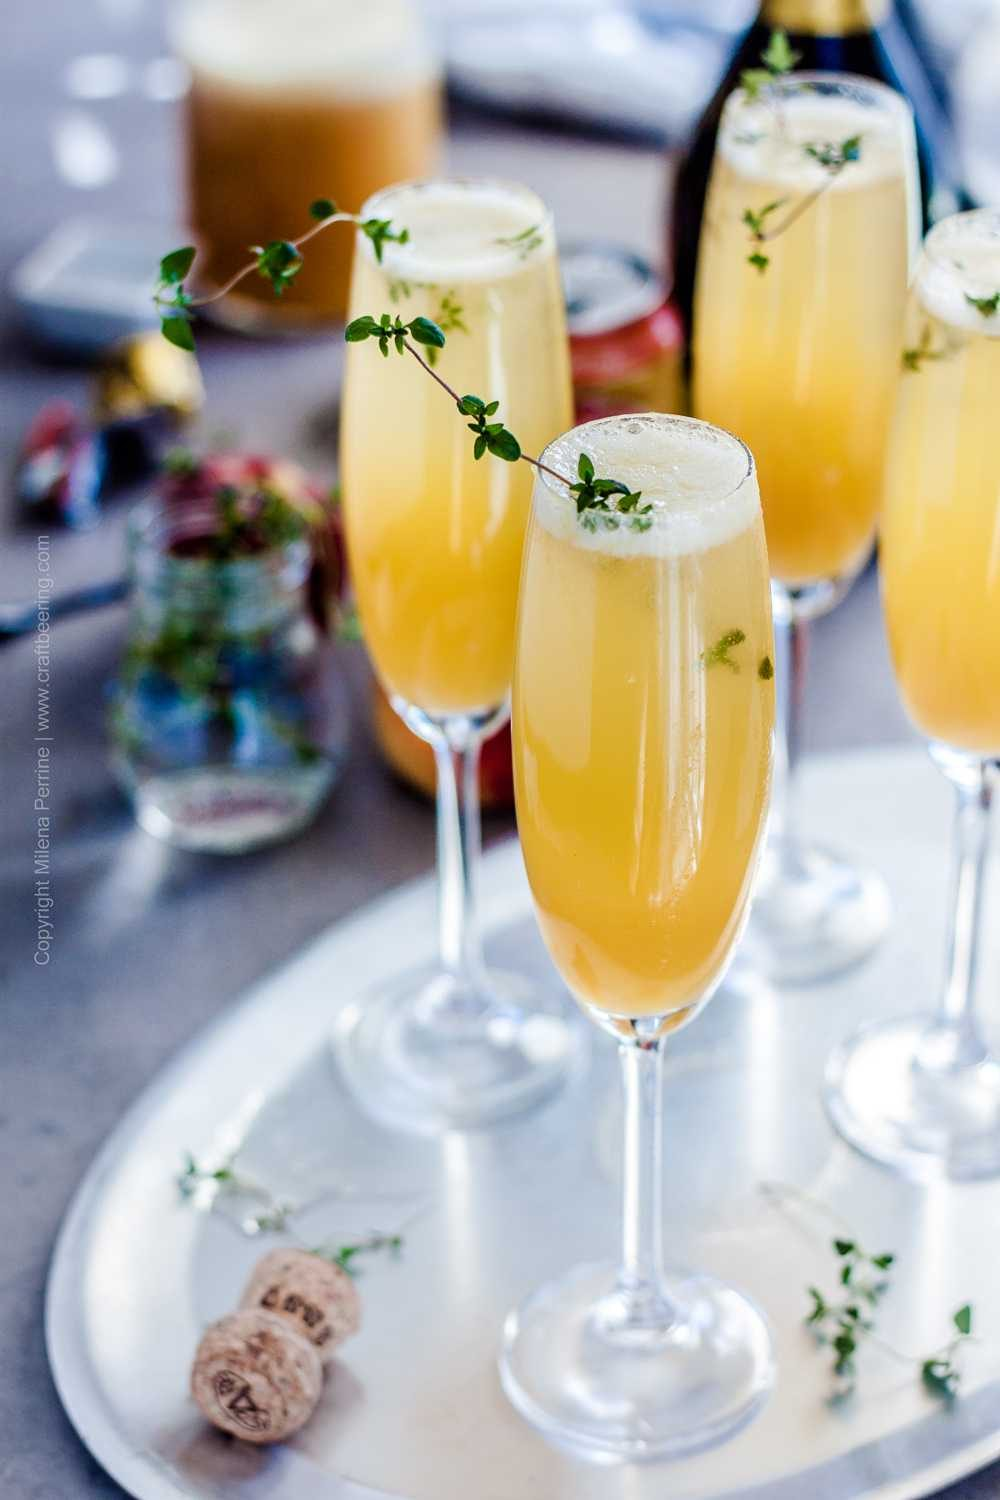 Fresh Peach Bellini Cocktail in flute glasses garnished with thyme